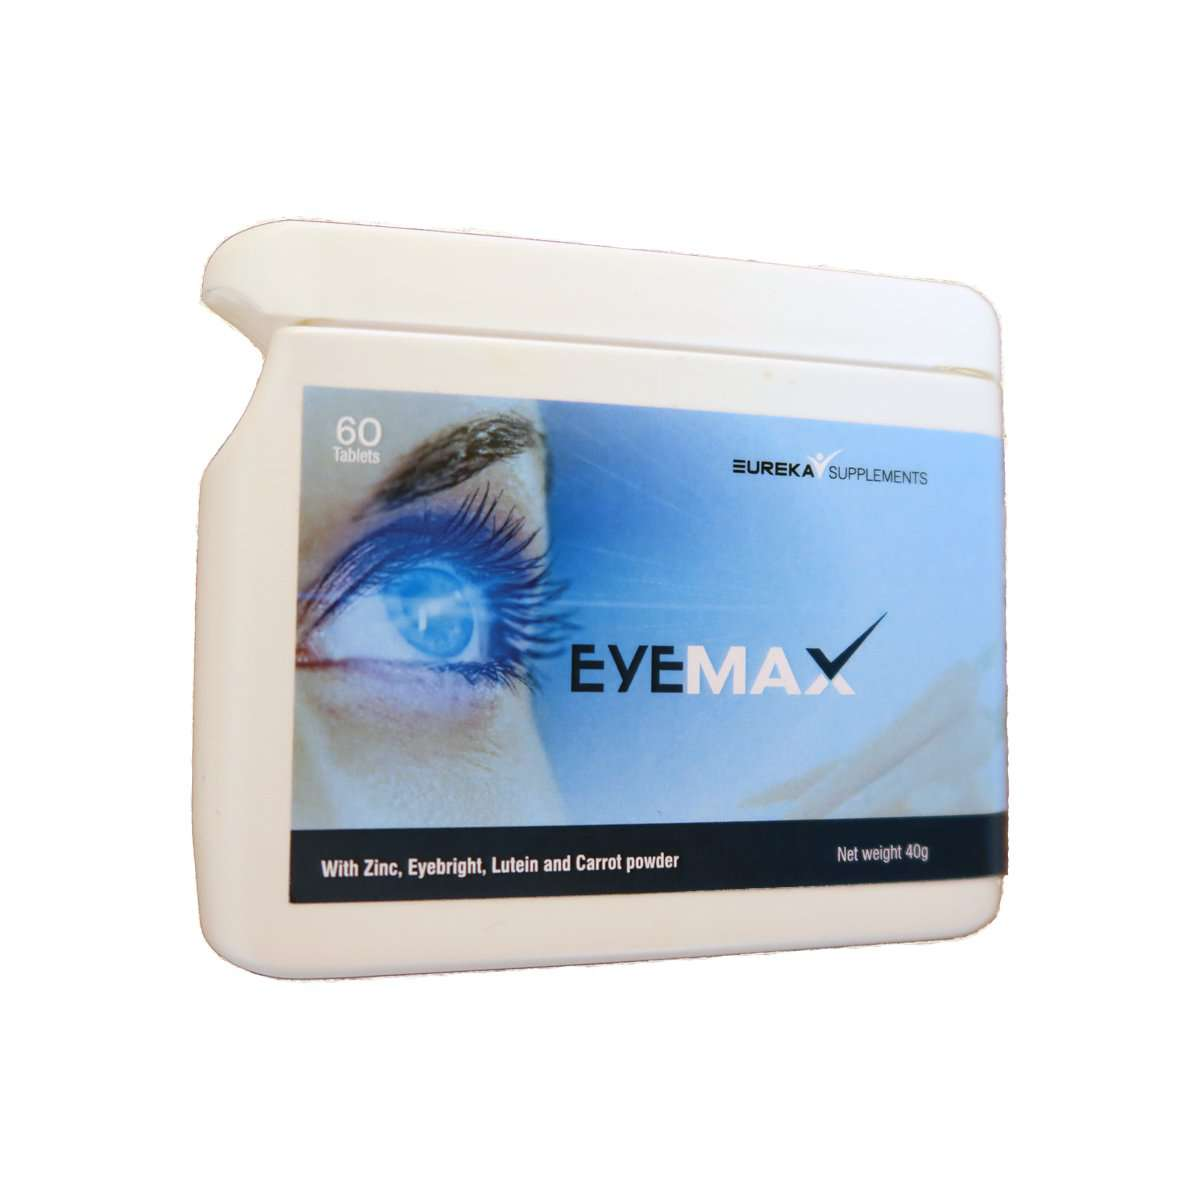 EyeMax - Eye Health Supplements | Buy Zinc Supplements Online